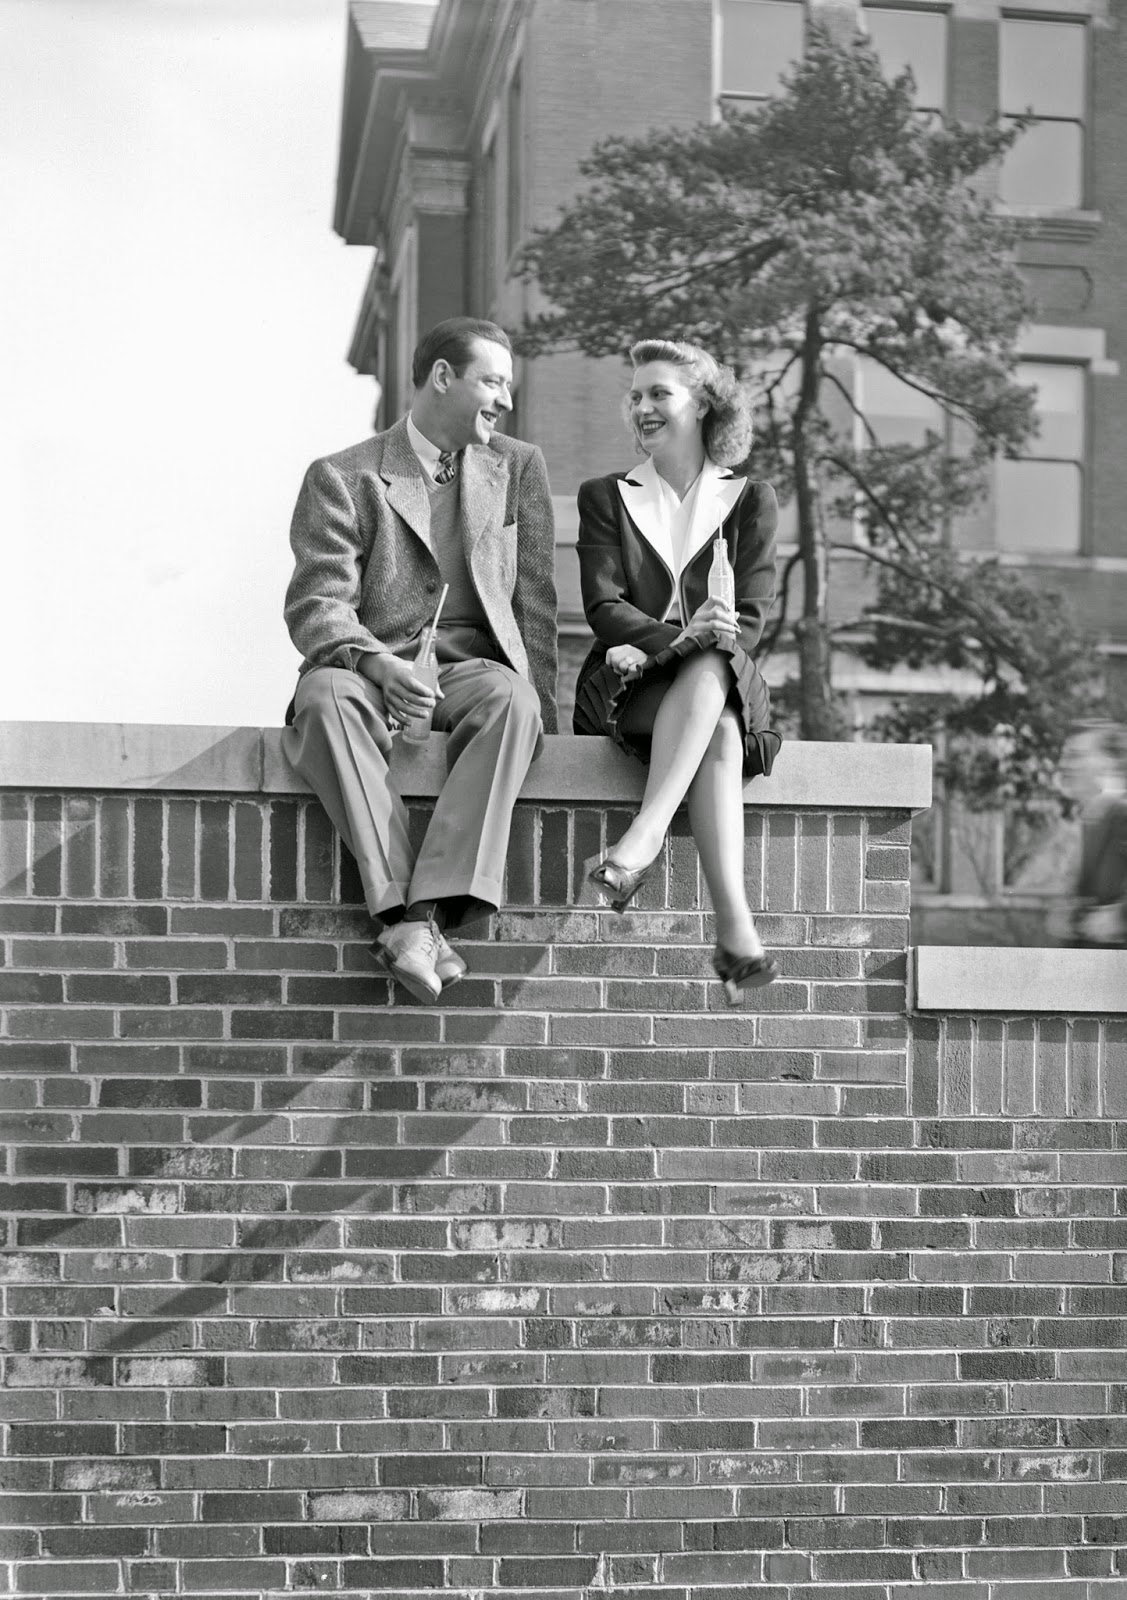 Man and woman sitting on brick wall drinking soda, 1939